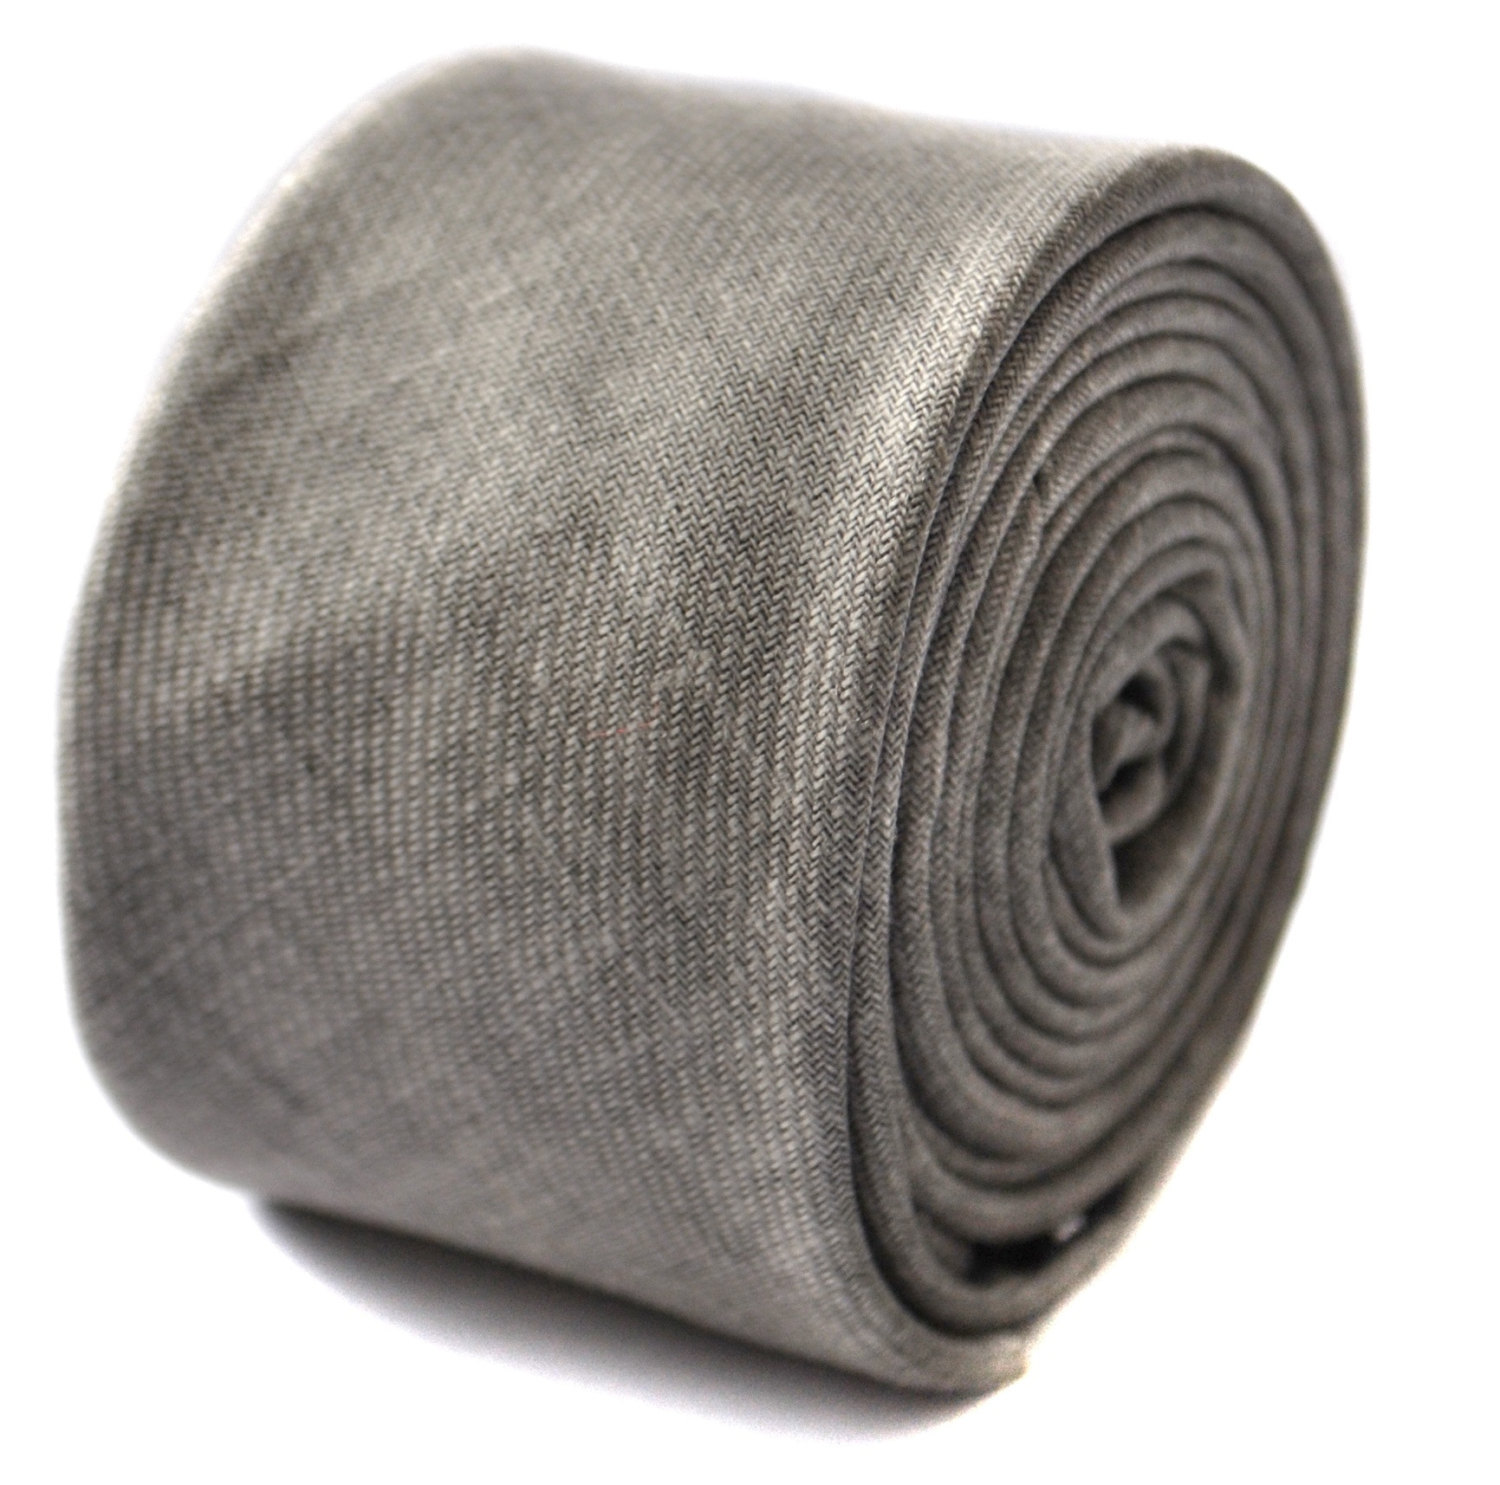 pale grey linen wool skinny tie by Frederick Thomas FT1672